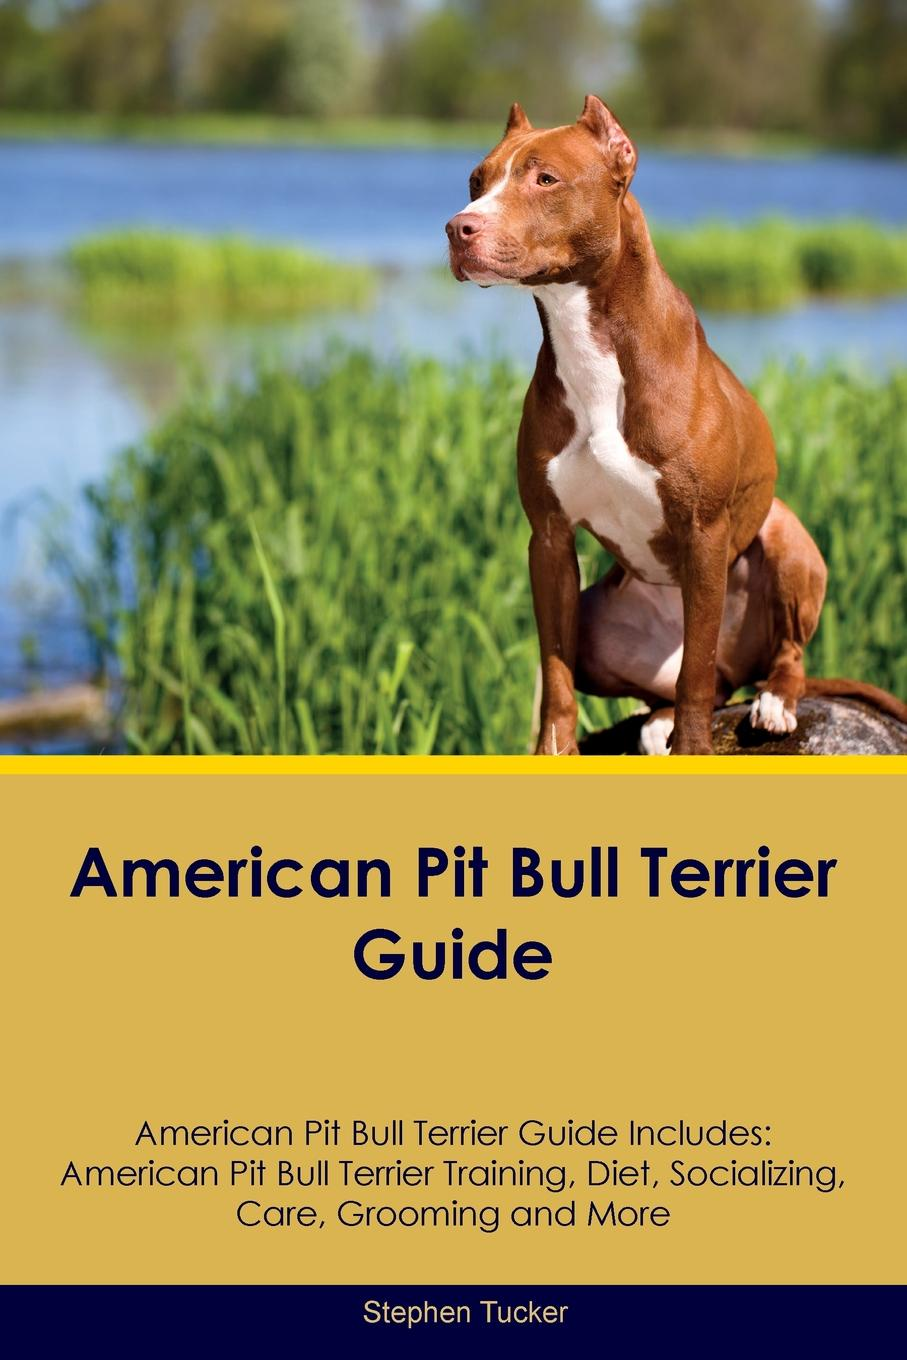 Stephen Tucker American Pit Bull Terrier Guide American Pit Bull Terrier Guide Includes. American Pit Bull Terrier Training, Diet, Socializing, Care, Grooming, Breeding and More pit p11253